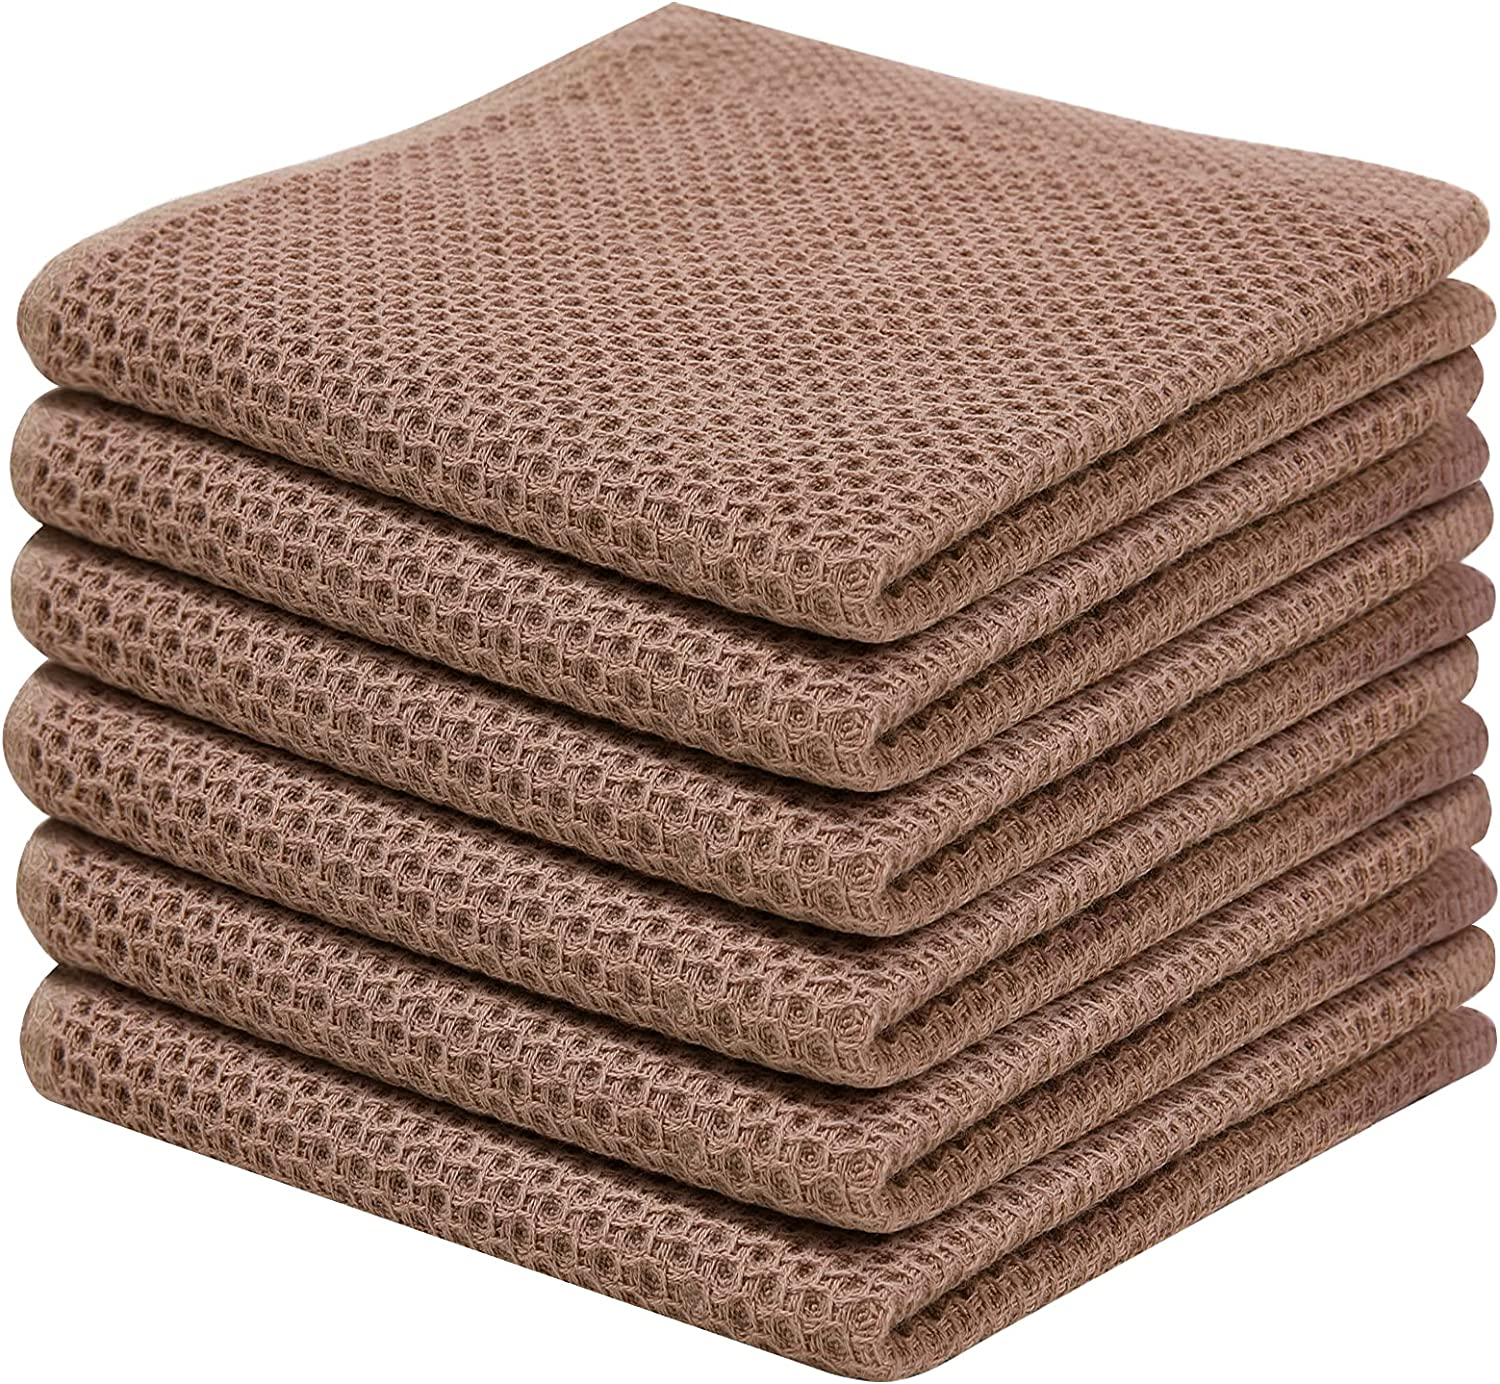 100% Cotton Kitchen Dish Cloths, 6 Pack Waffle Weave Dish Towels Ultra Soft Absorbent Quick Drying Kitchen Towels, 12 X 12Inch, Brown